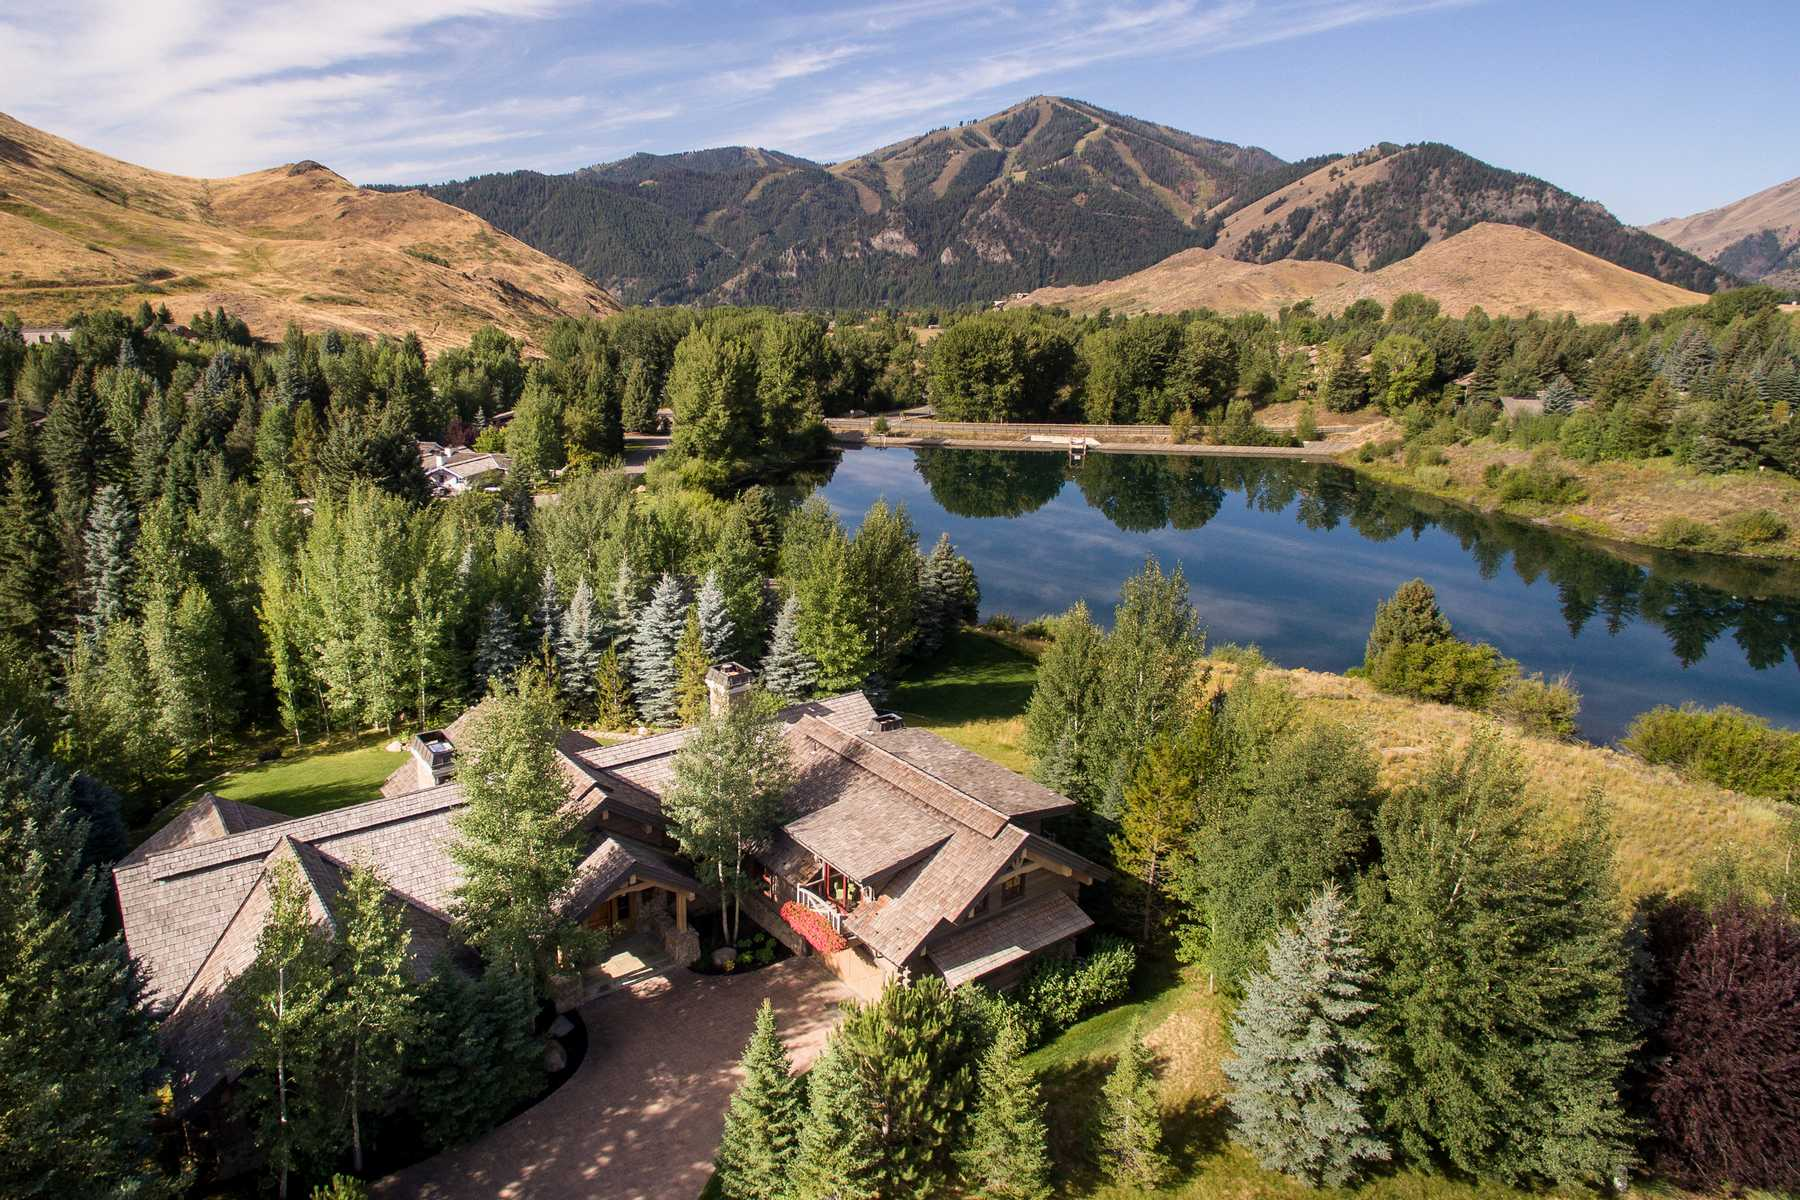 Single Family Home for Sale at Overlooking the Lake Sun Valley, Idaho, 83353 United States